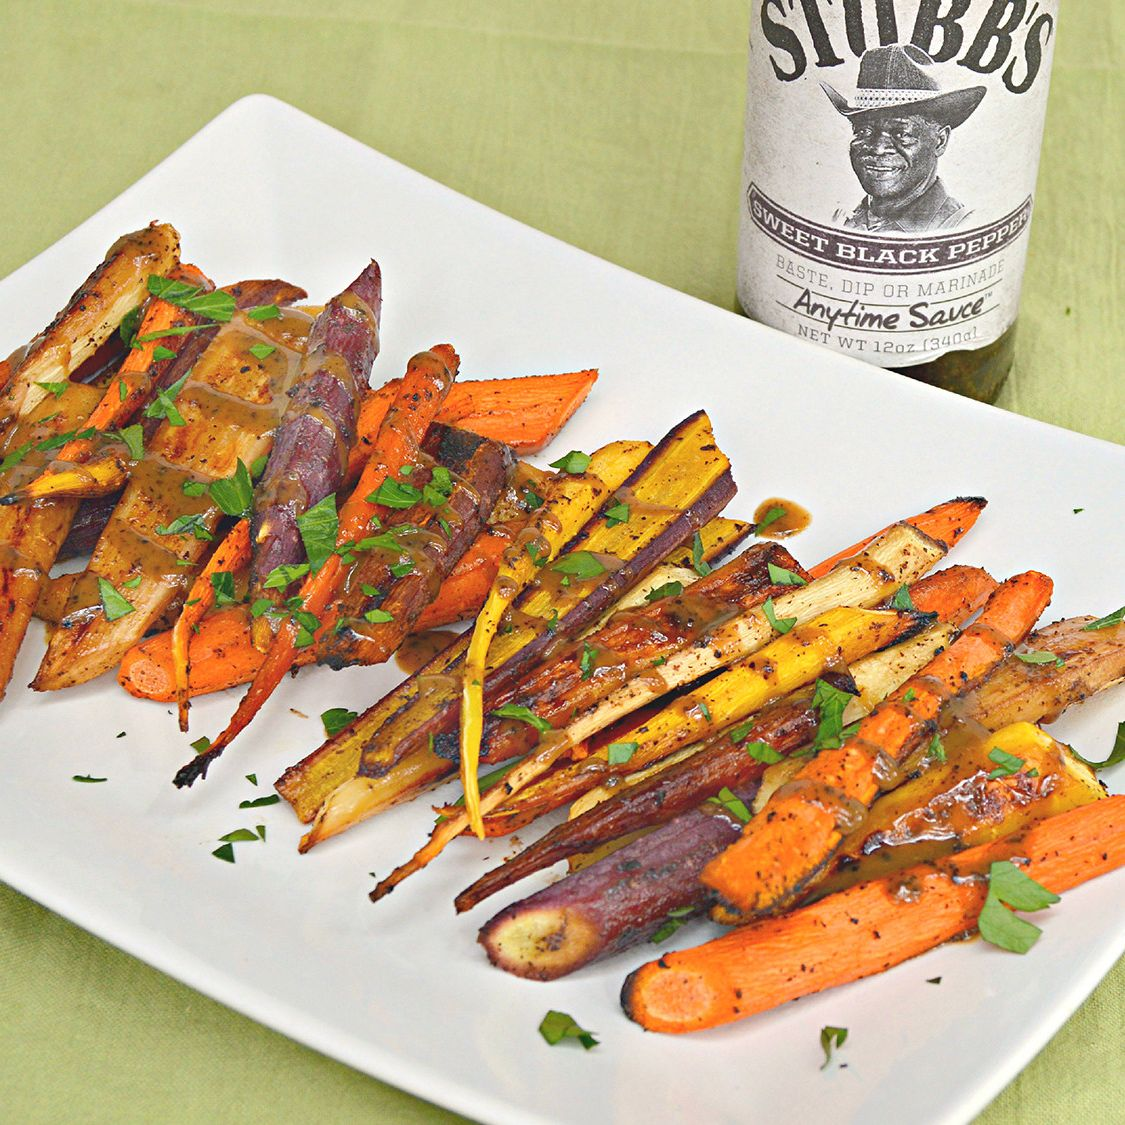 stubbs_sweet_black_pepper_roasted_carrots.jpg